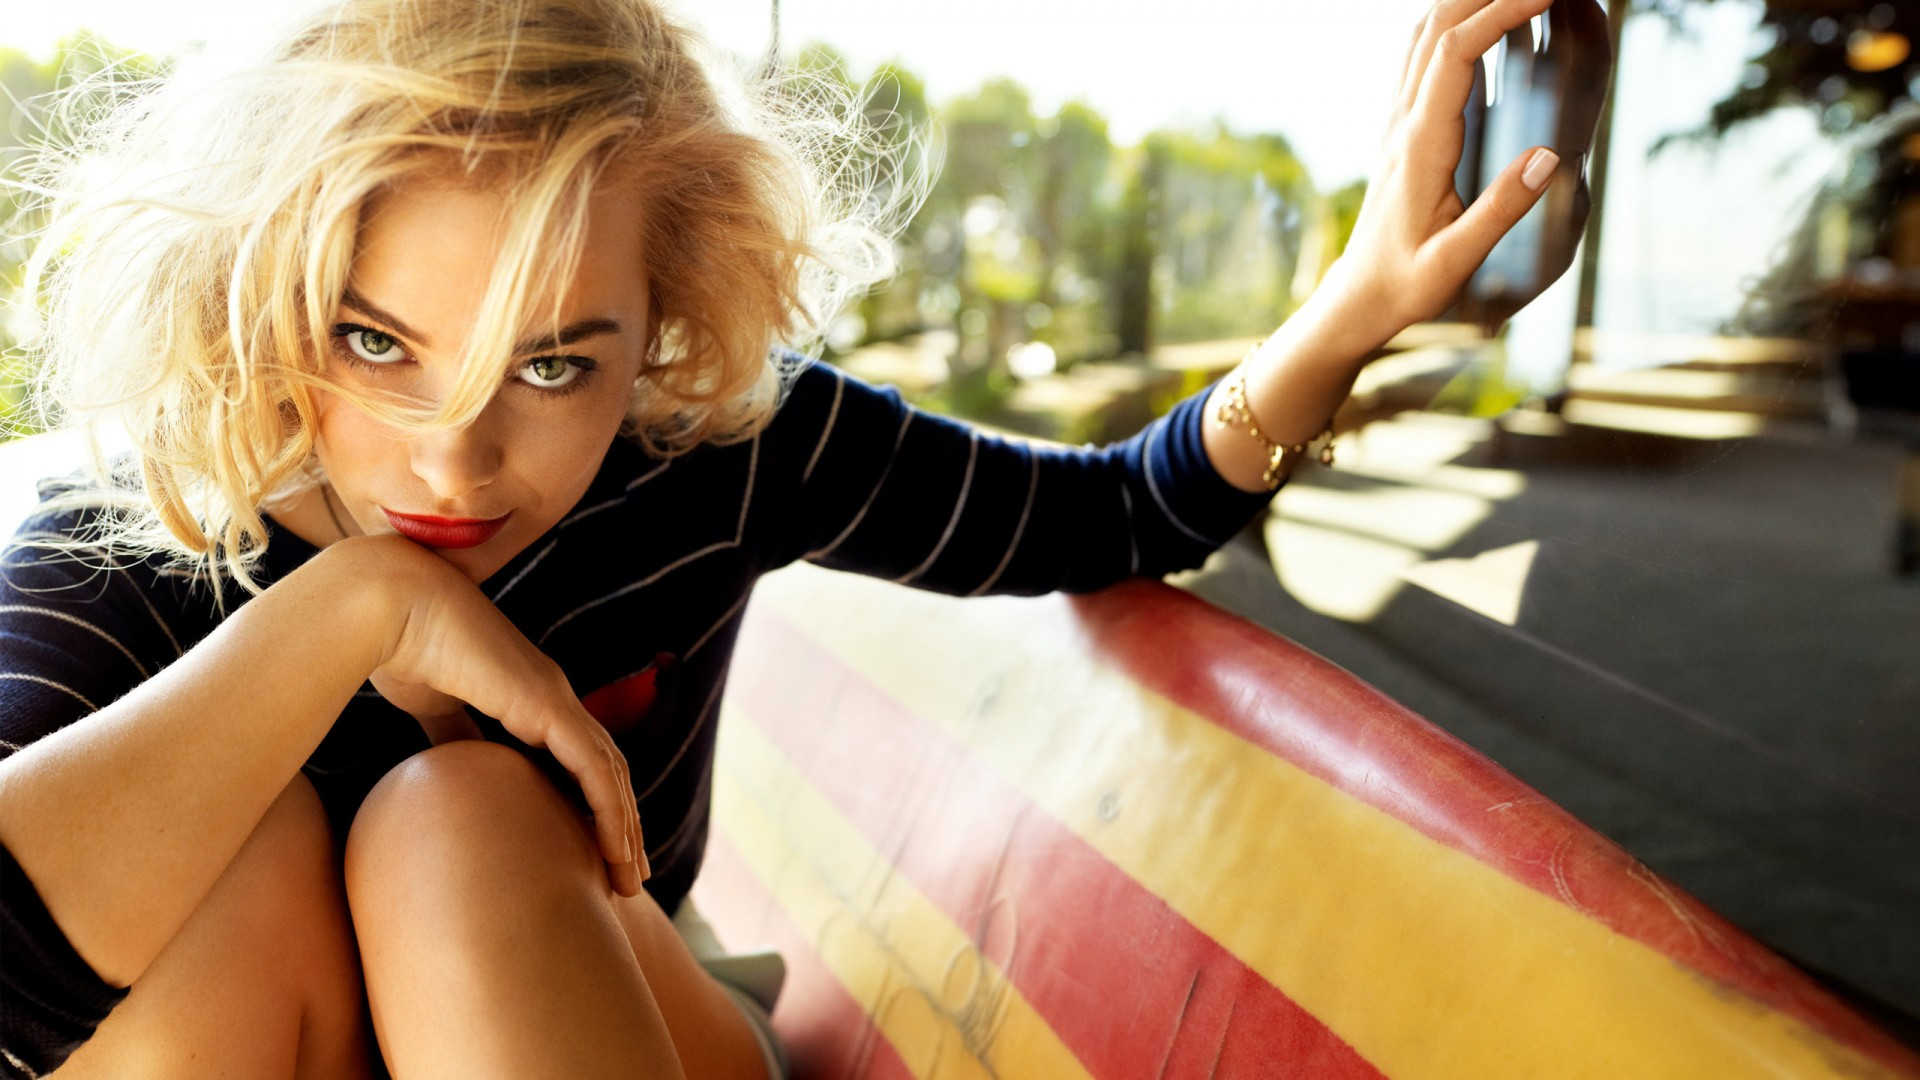 Wolf Of Wall Street Wallpaper Iphone Margot Robbie 5 Wallpapers Hd Wallpapers Id 20179